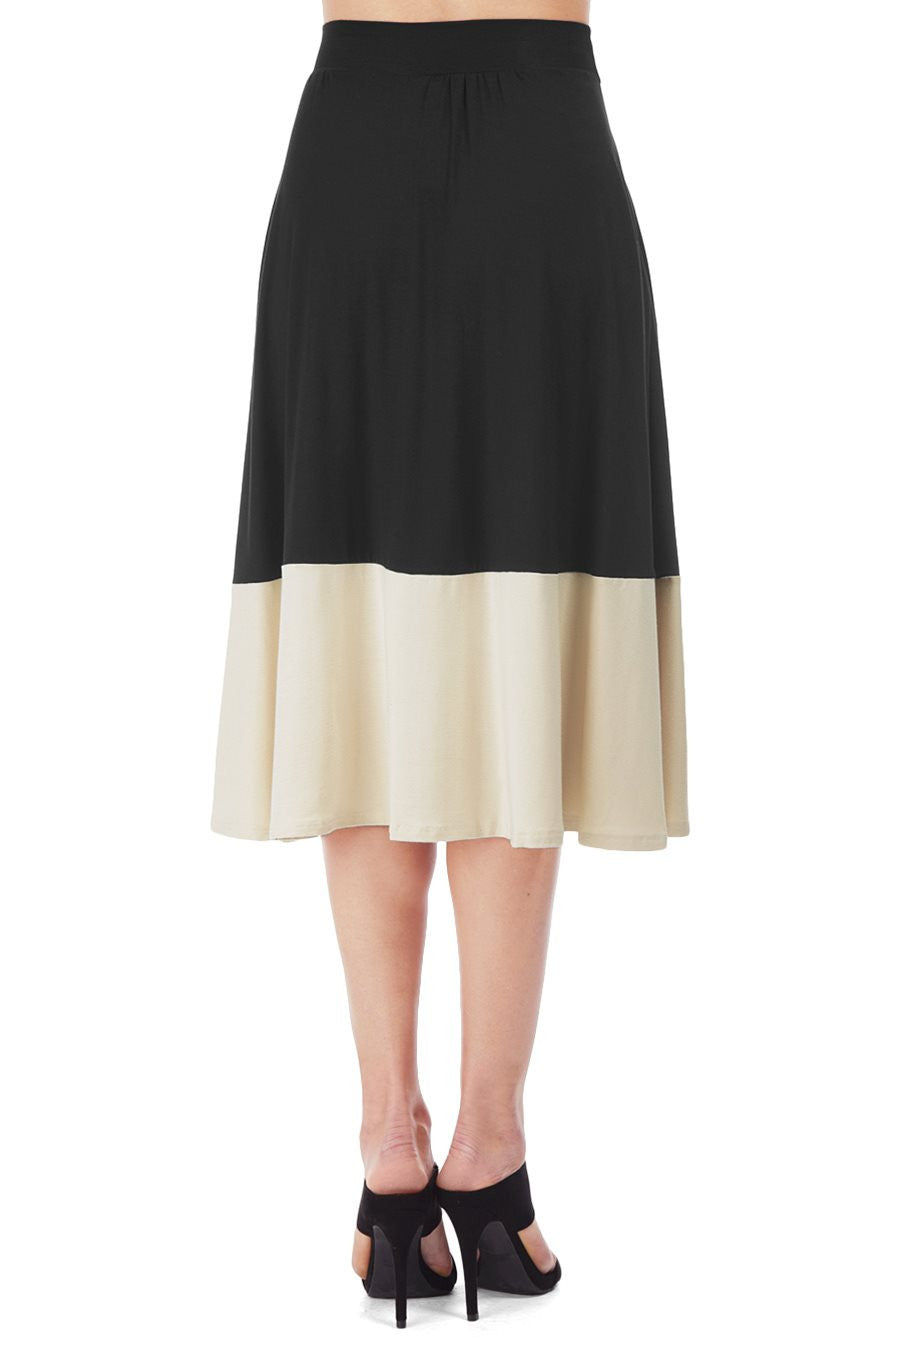 URSULA TWO-TONE SKIRT - BLACK/CREAM